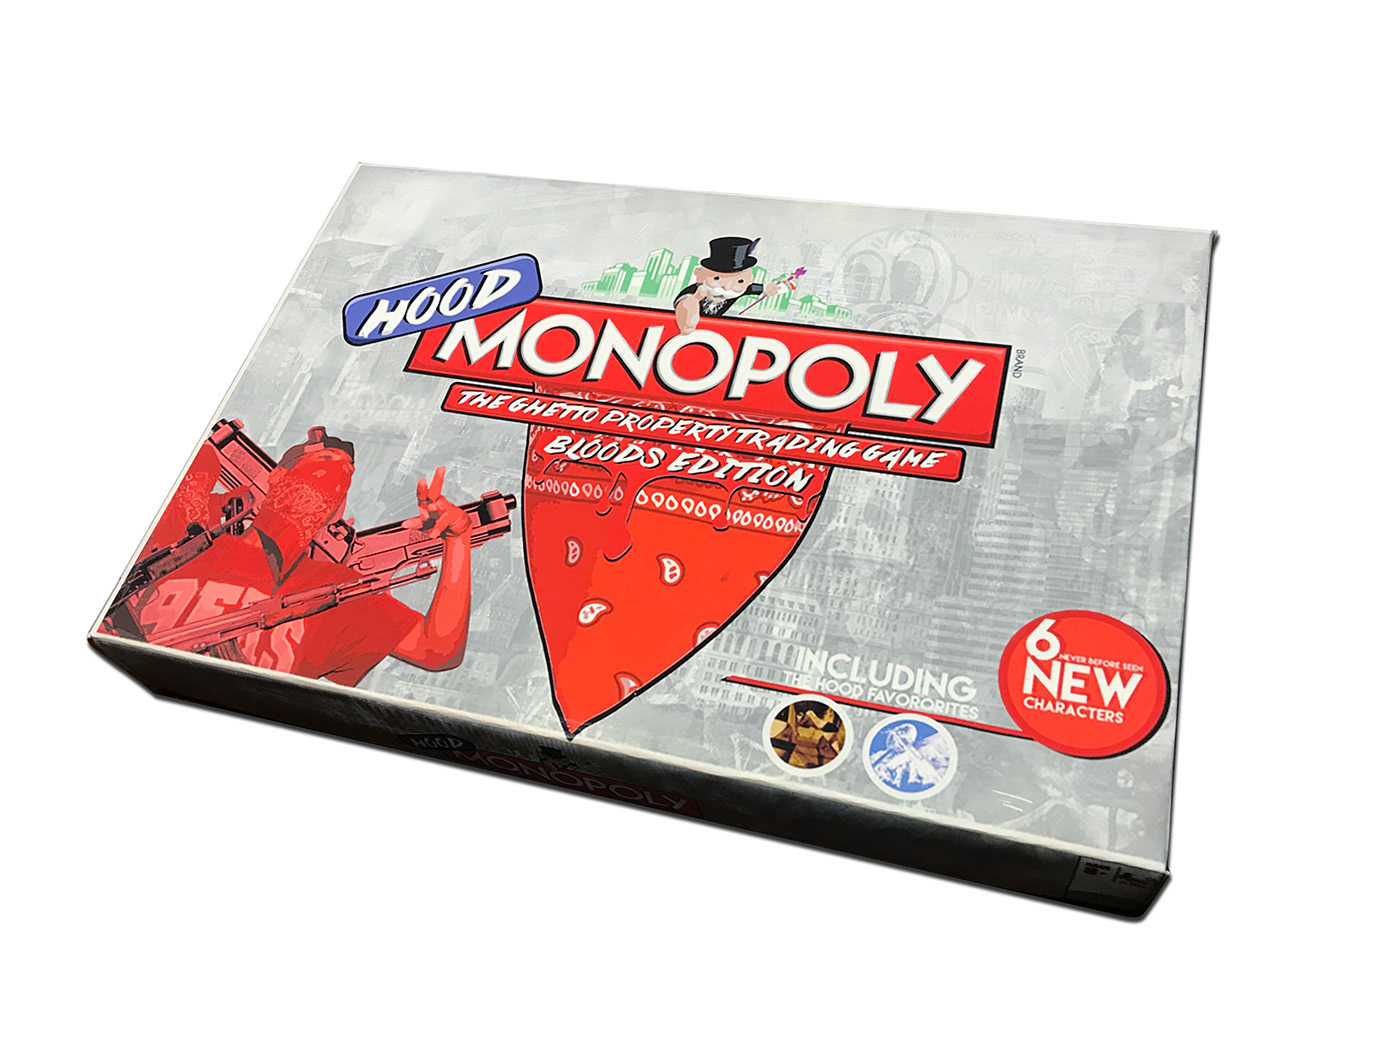 Hood Monopoly: Bloods Edition on Behance